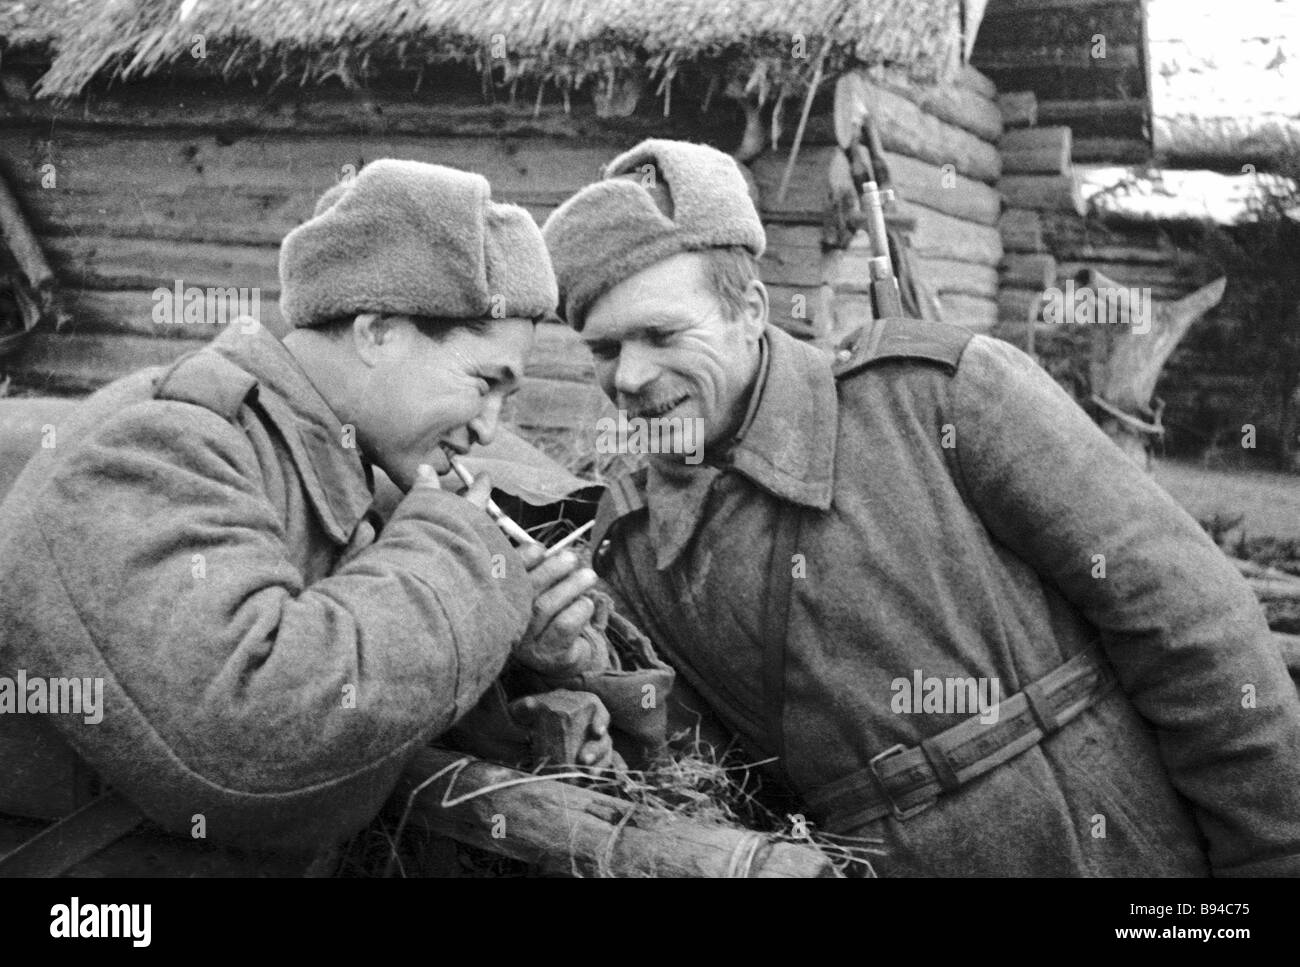 Soviet frontline troops roll their cigarettes - Stock Image